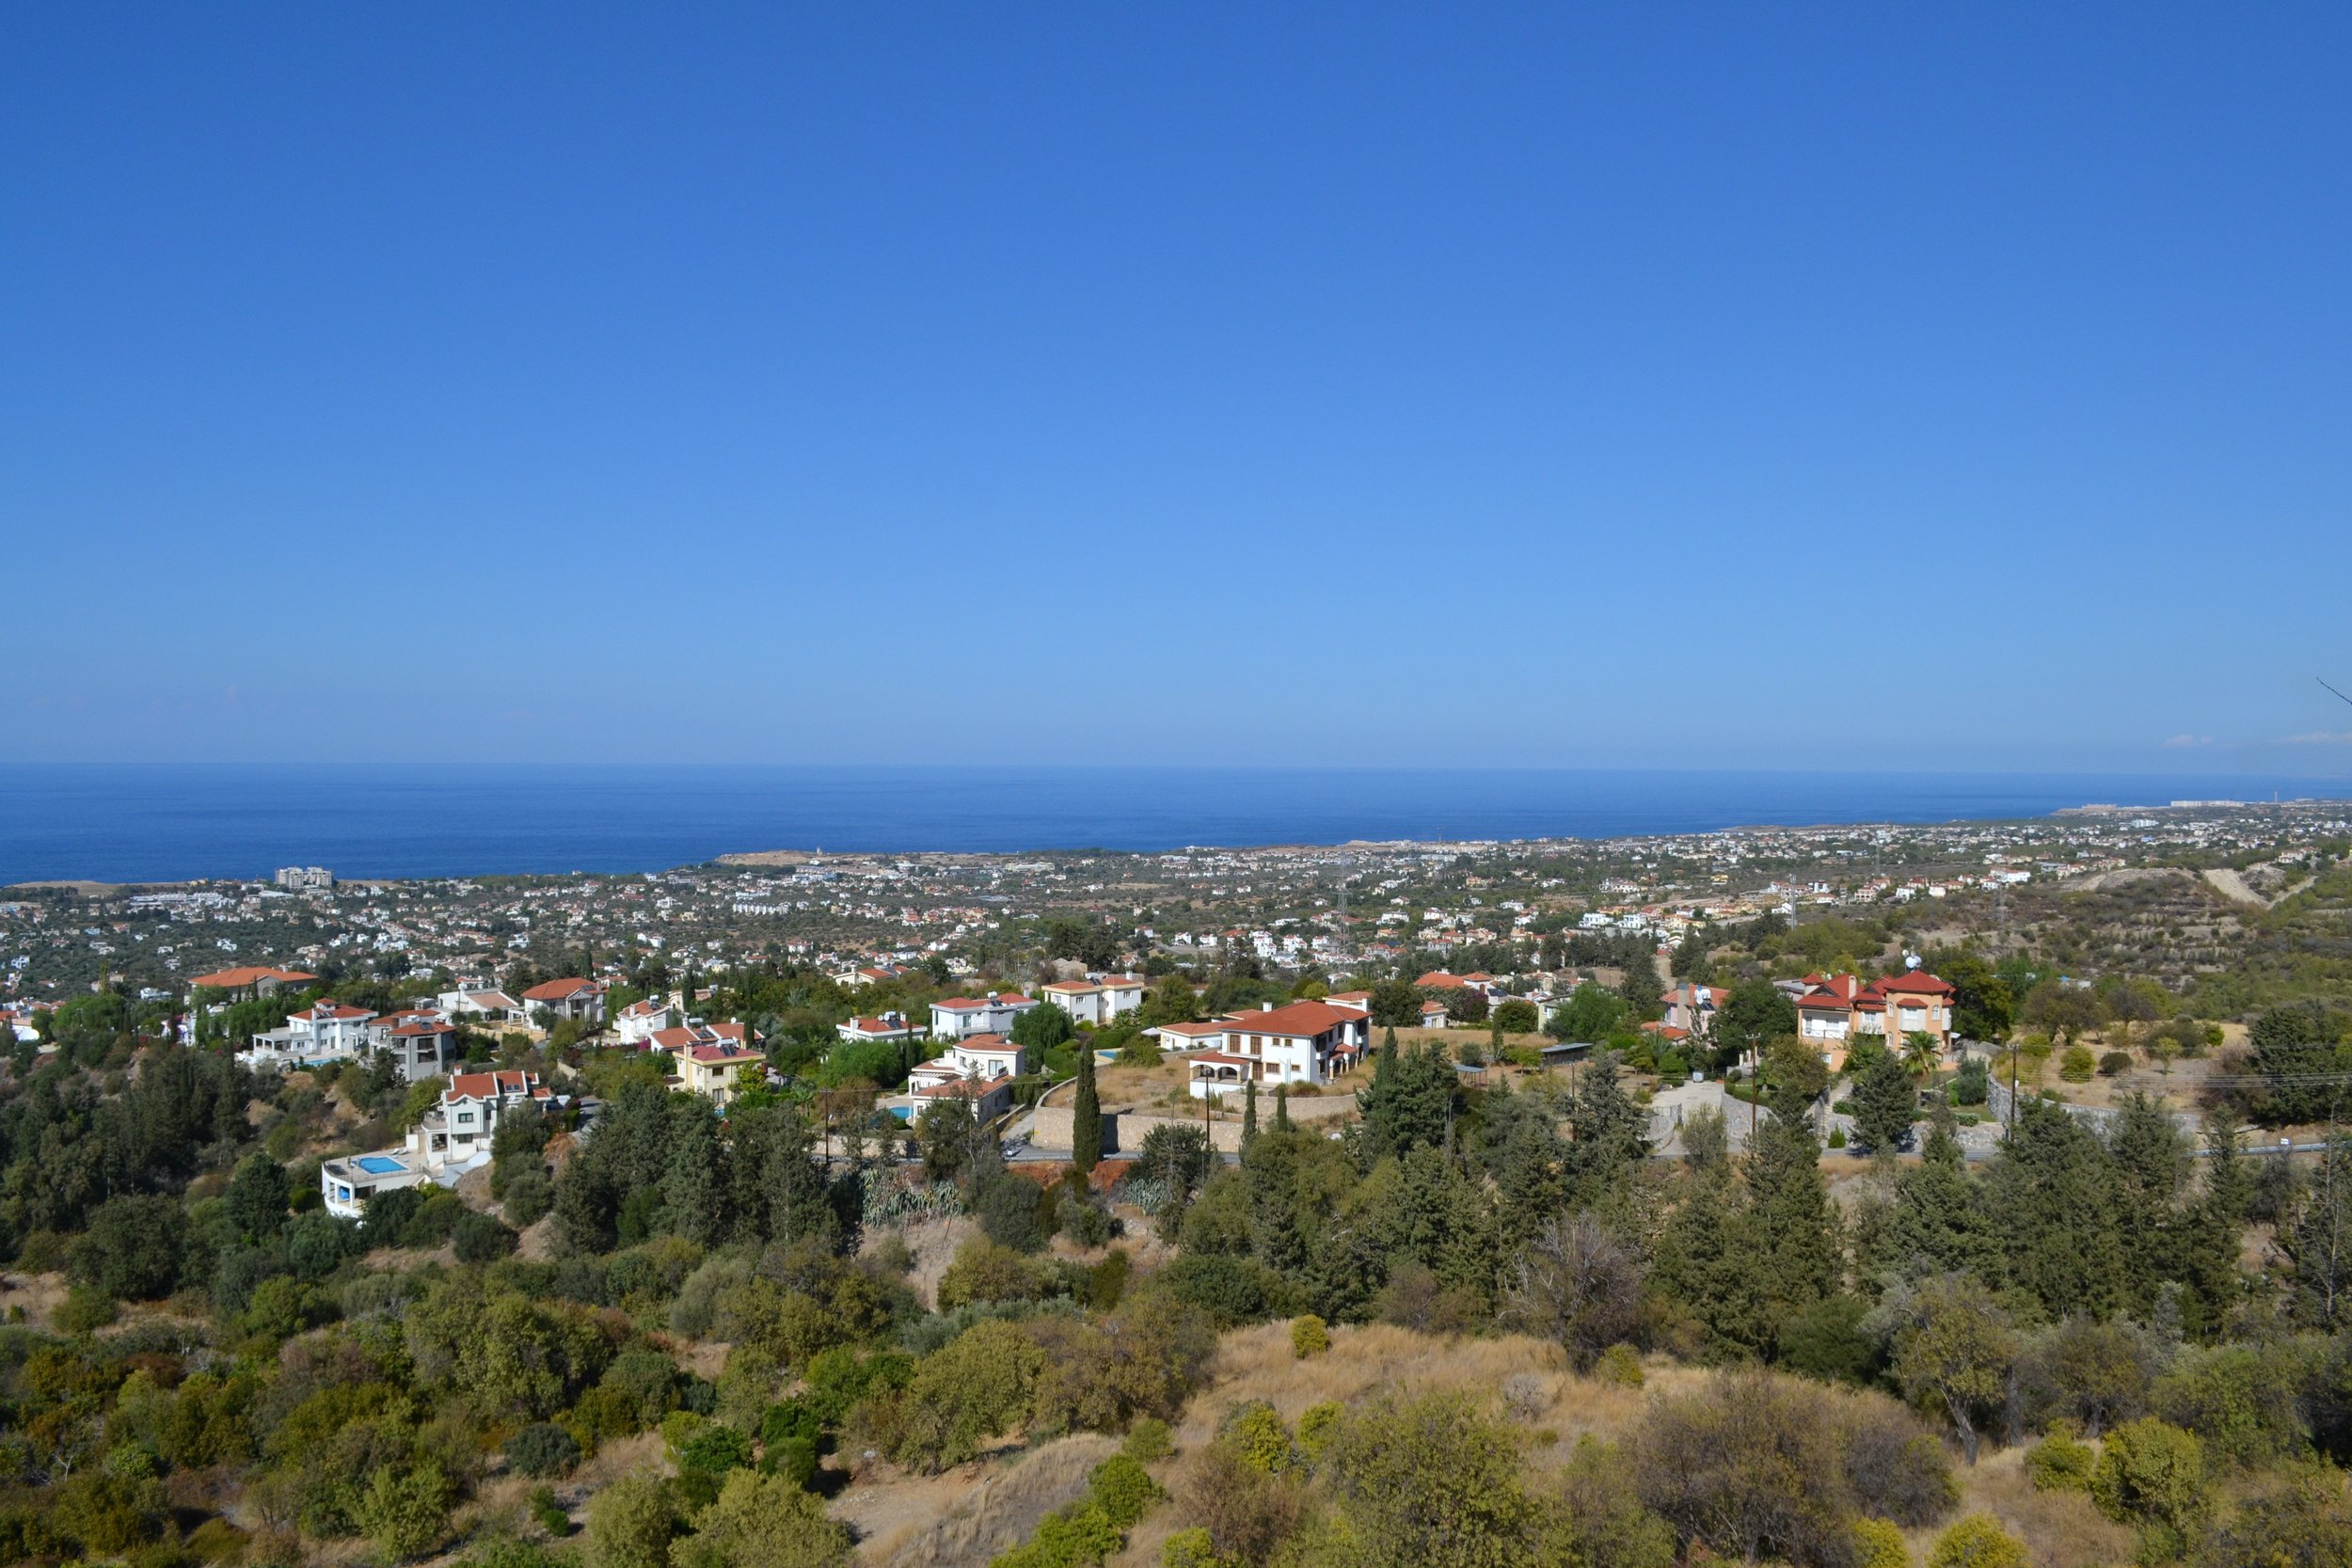 A view of Kyrenia (Girne) in the Turkish Republic of Northern Cyprus